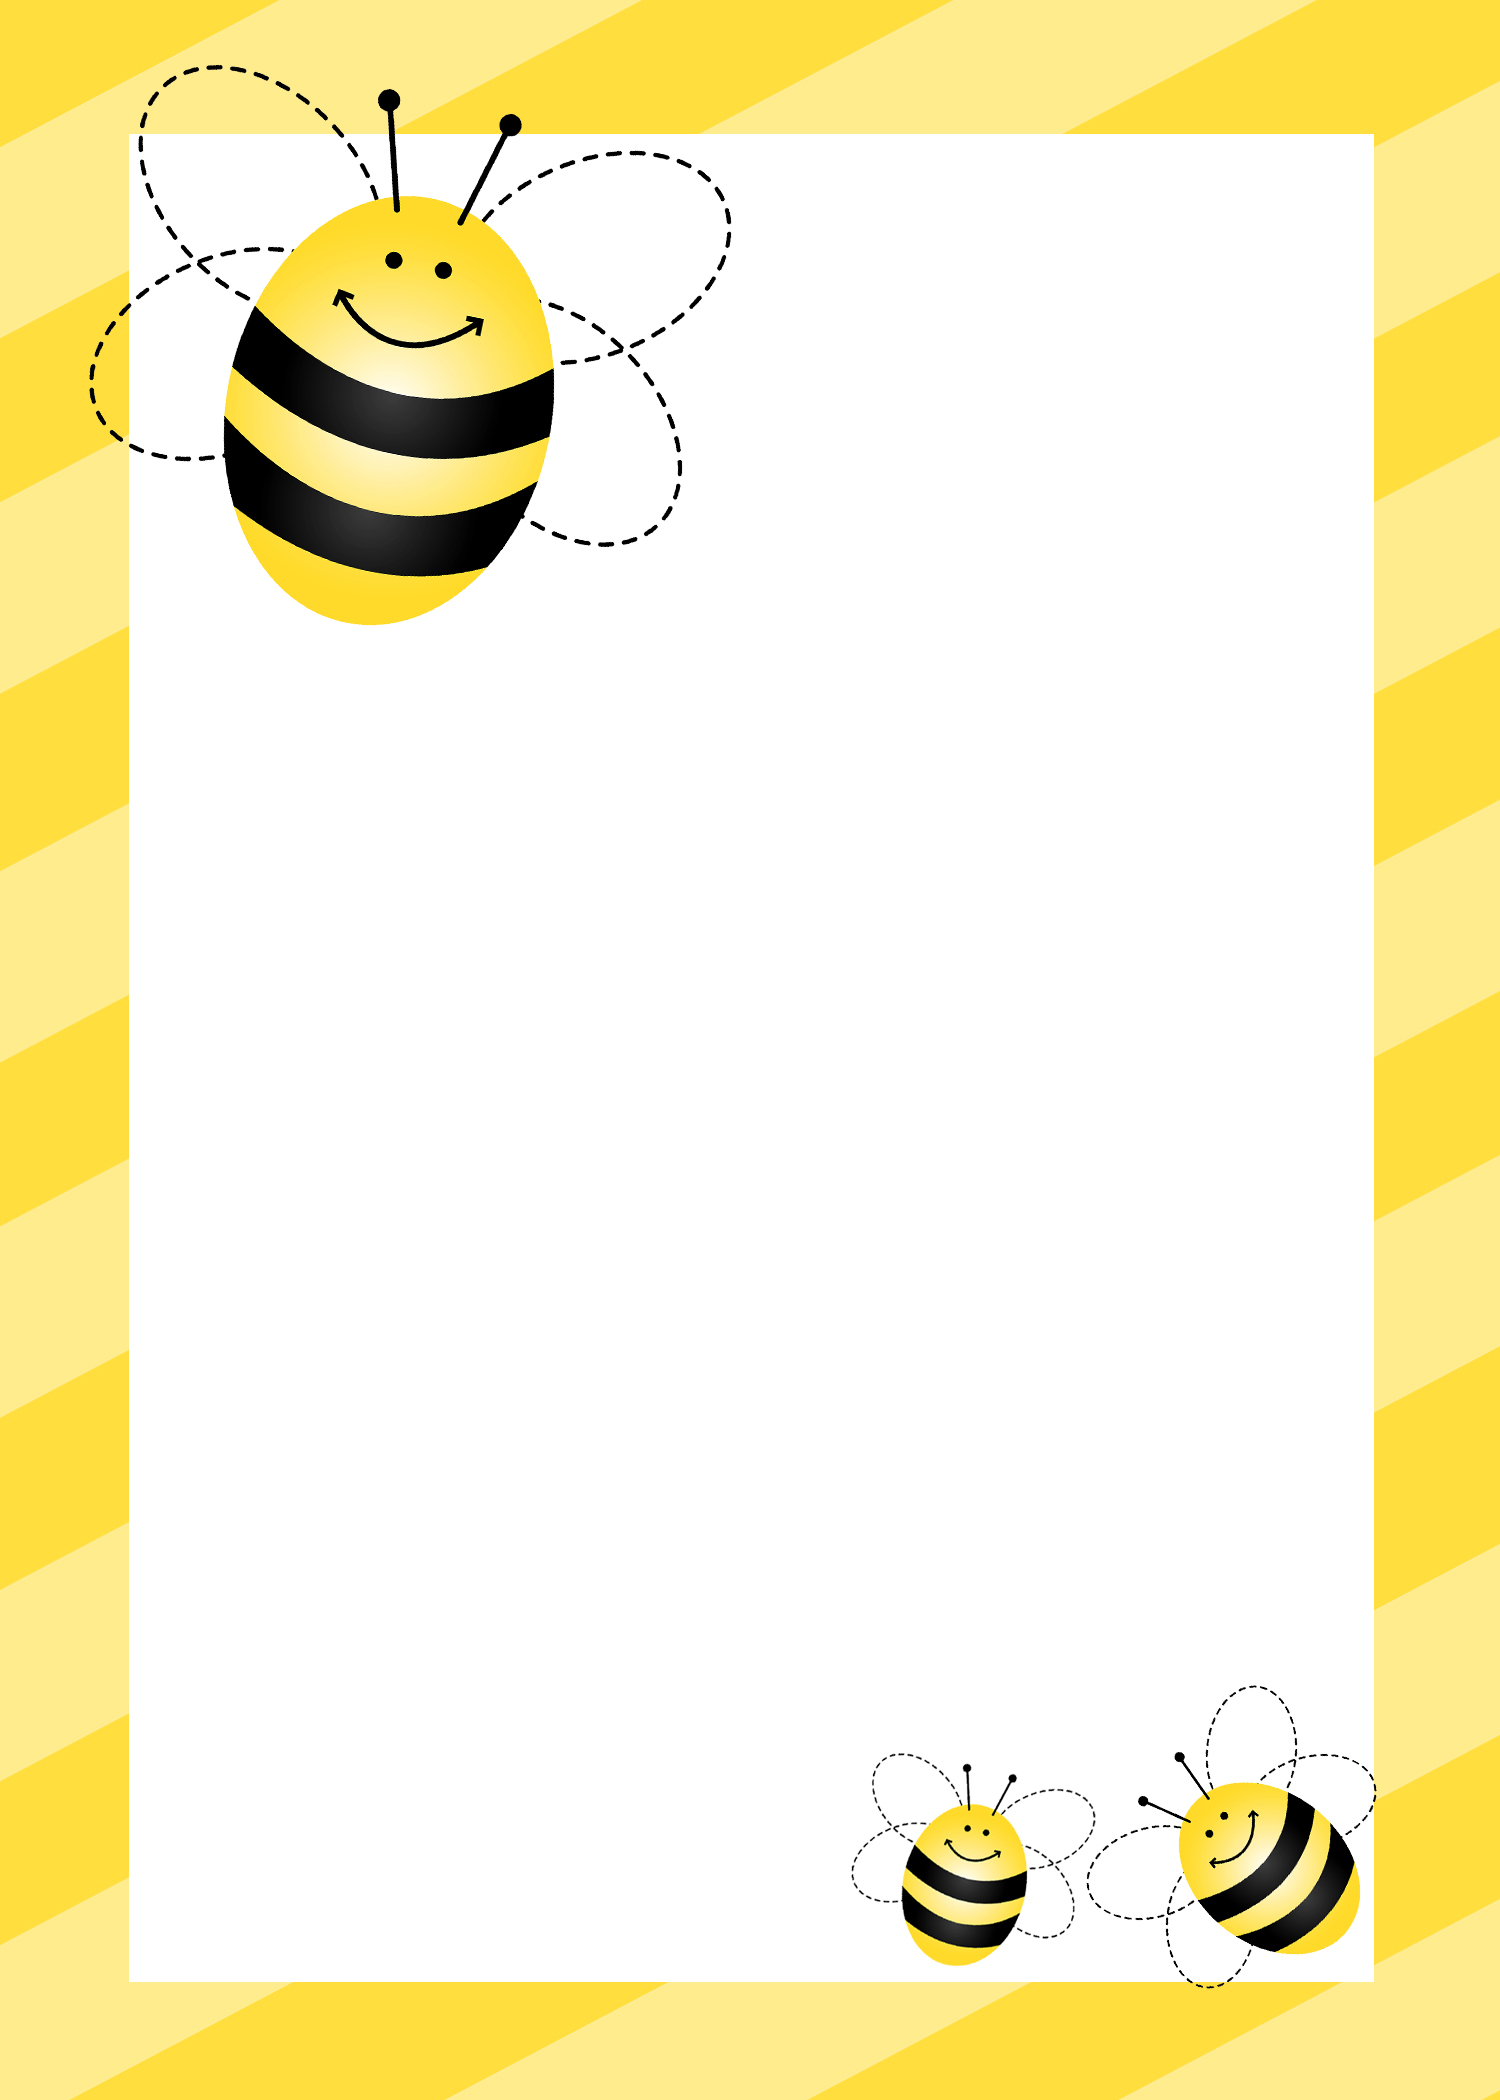 Honey Bee Clip Art Borders Images crazygalleryinfo 1500x2100